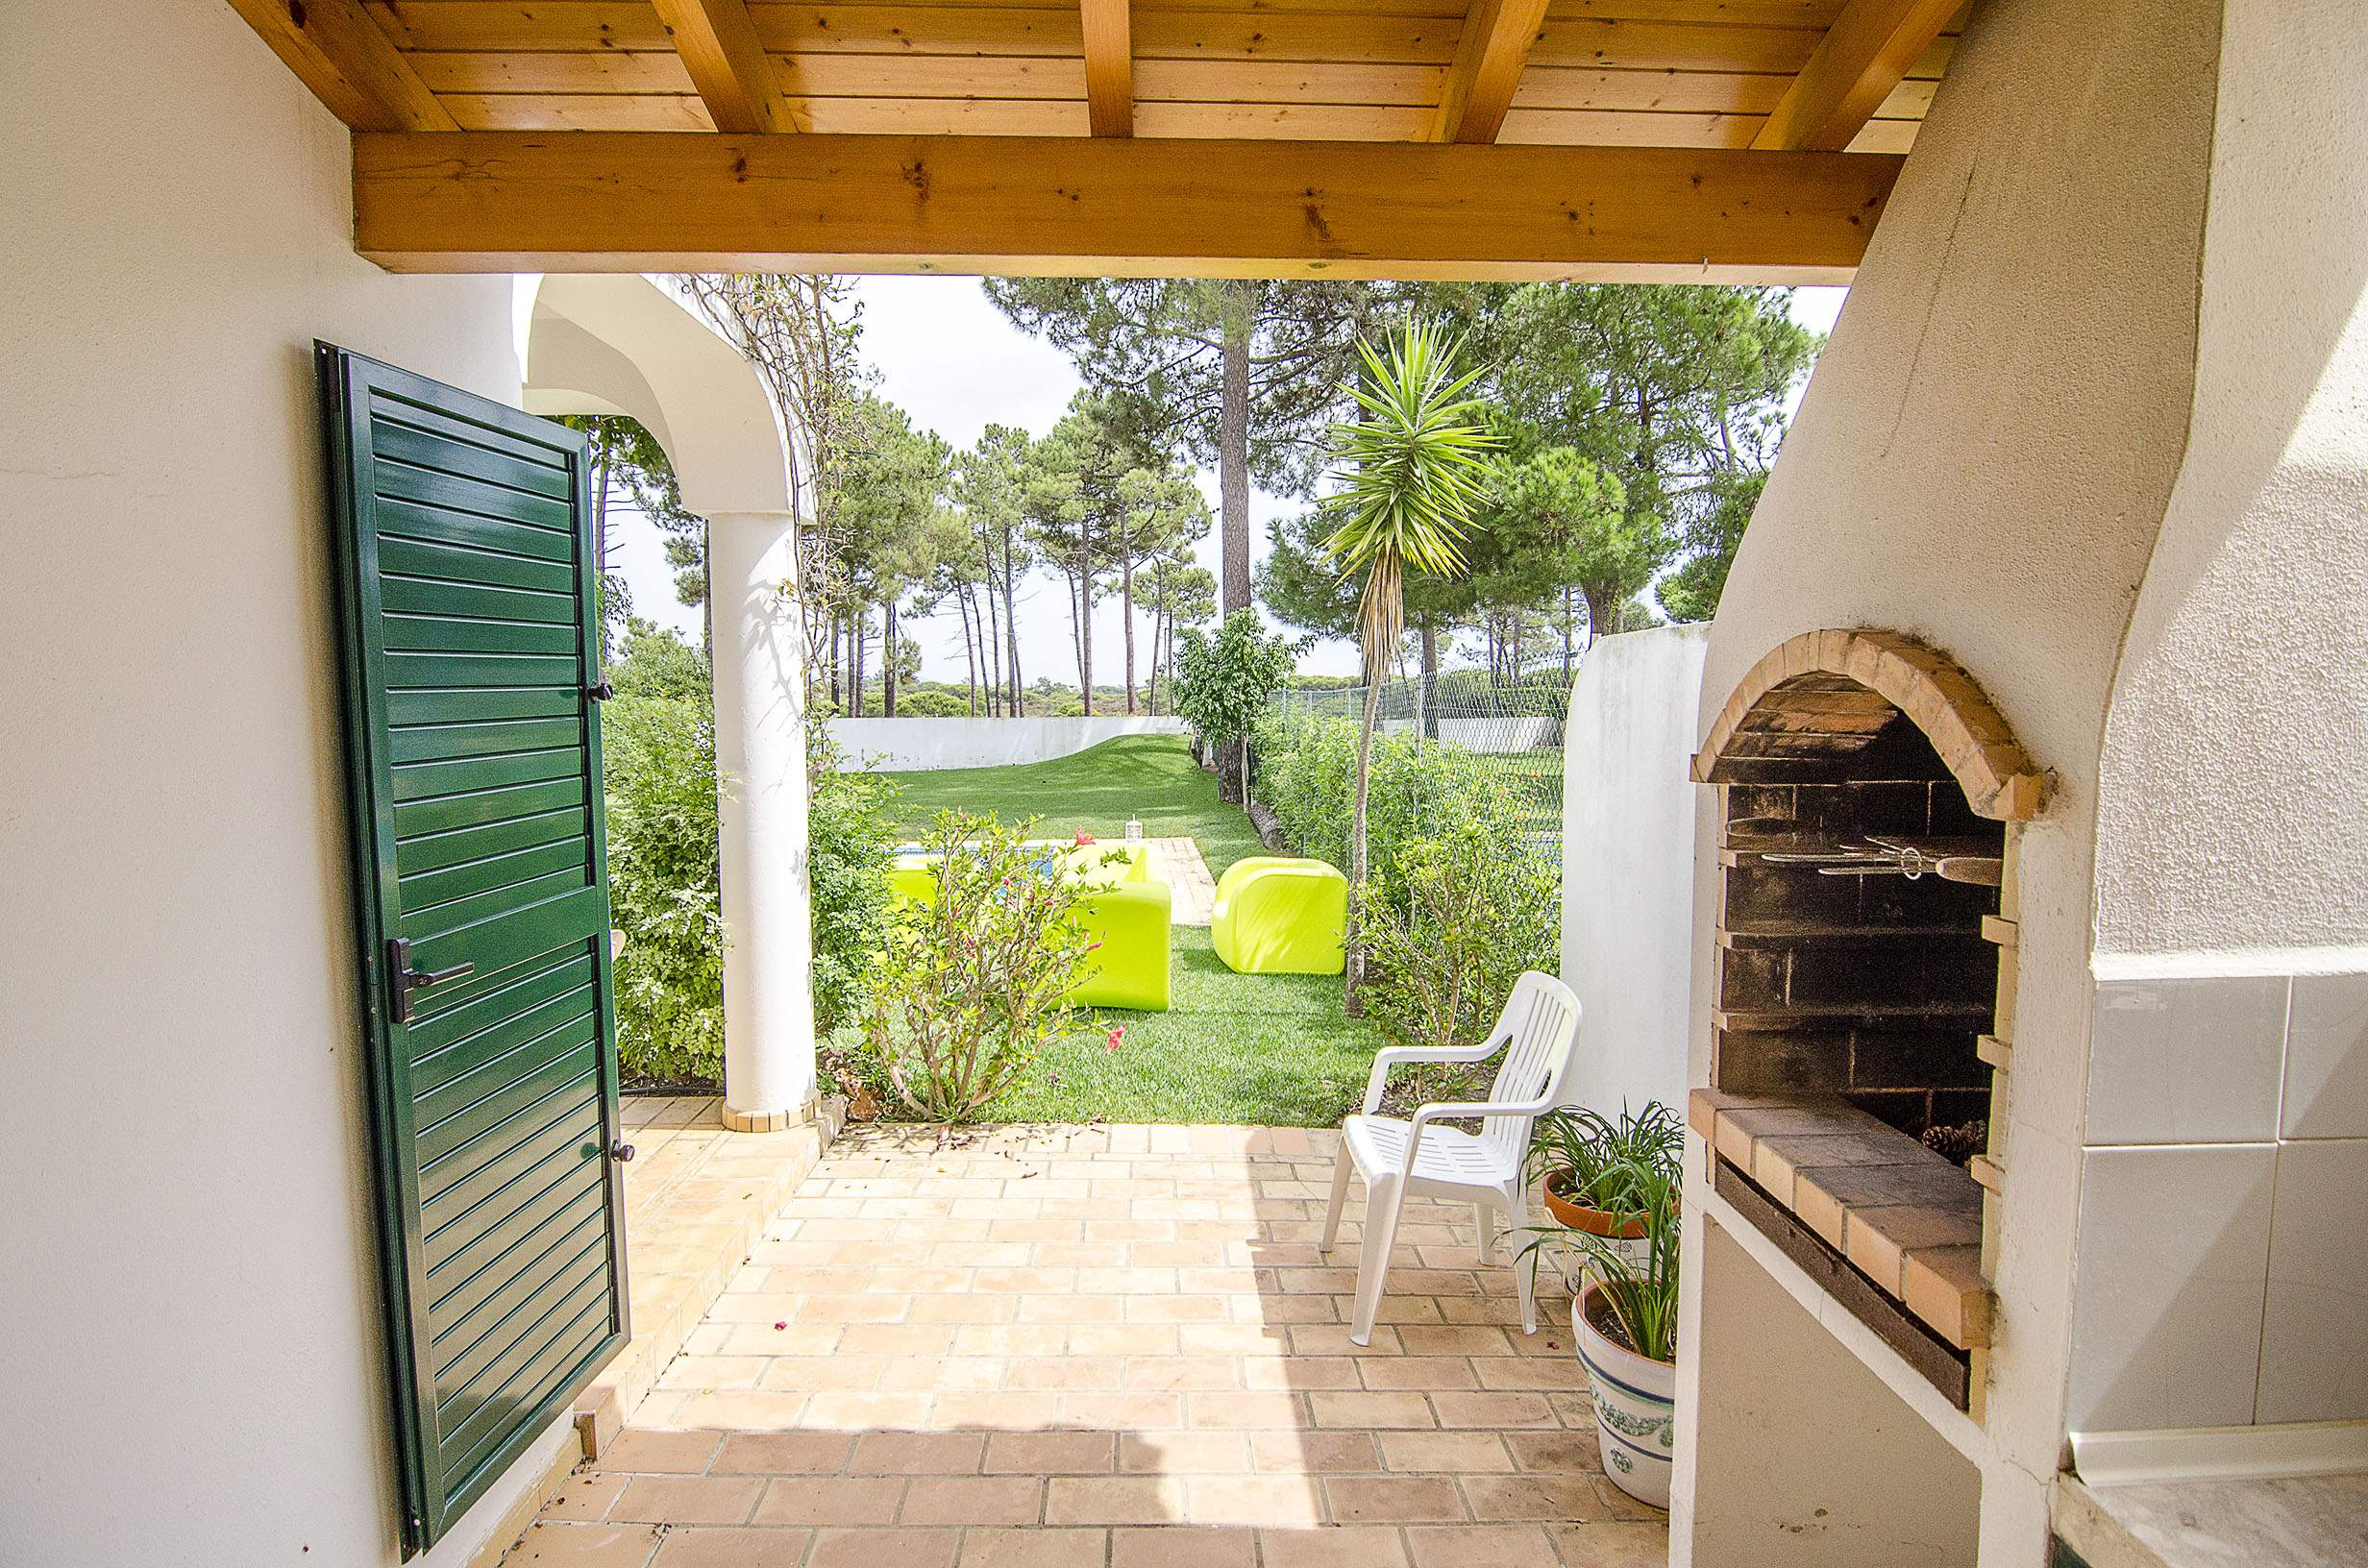 Villa Clara, 4 bedroom villa in Vilamoura Area, Algarve Photo #11